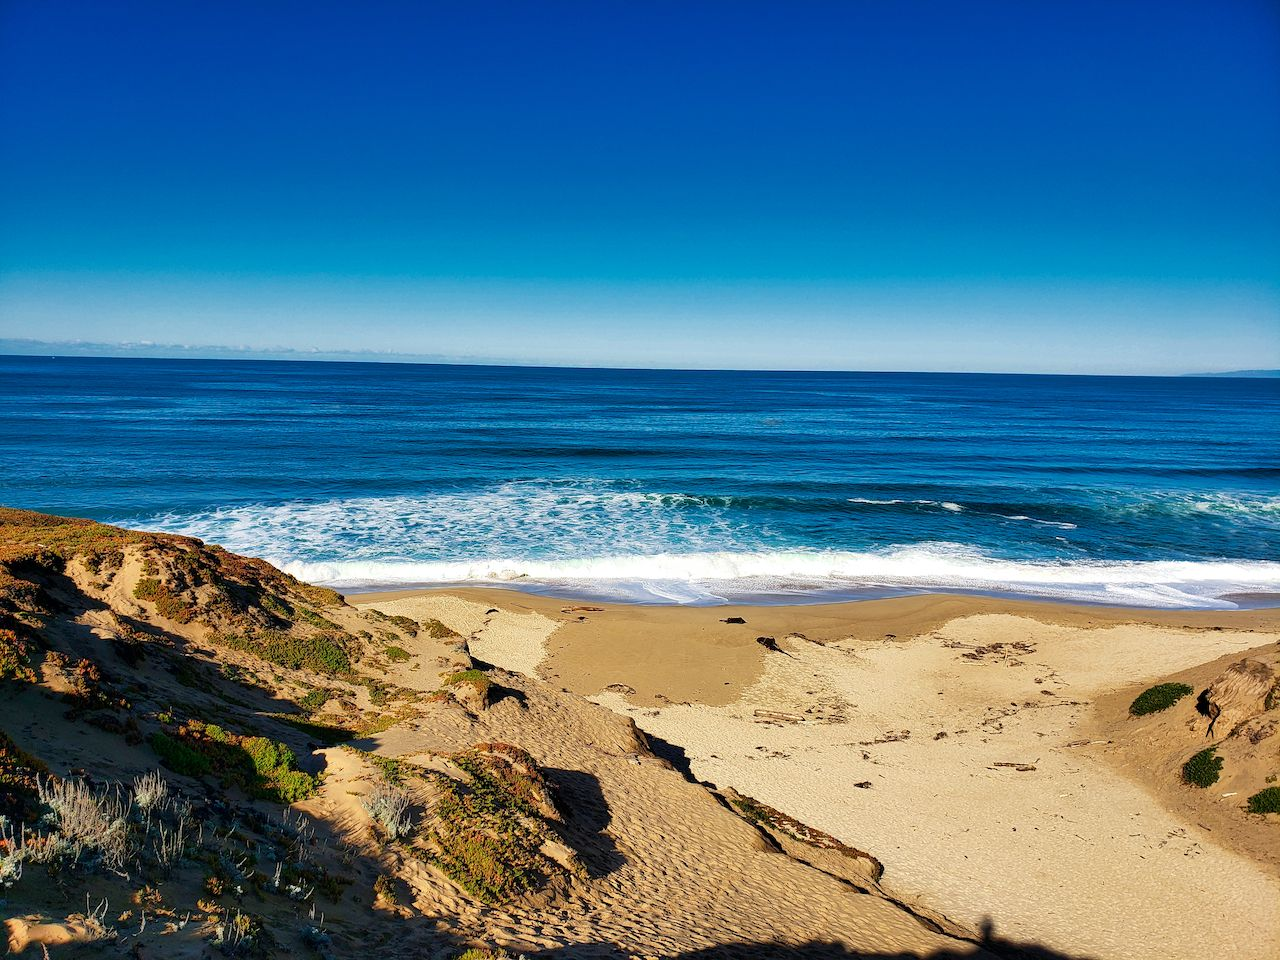 Fort Ord Dunes State Park campground